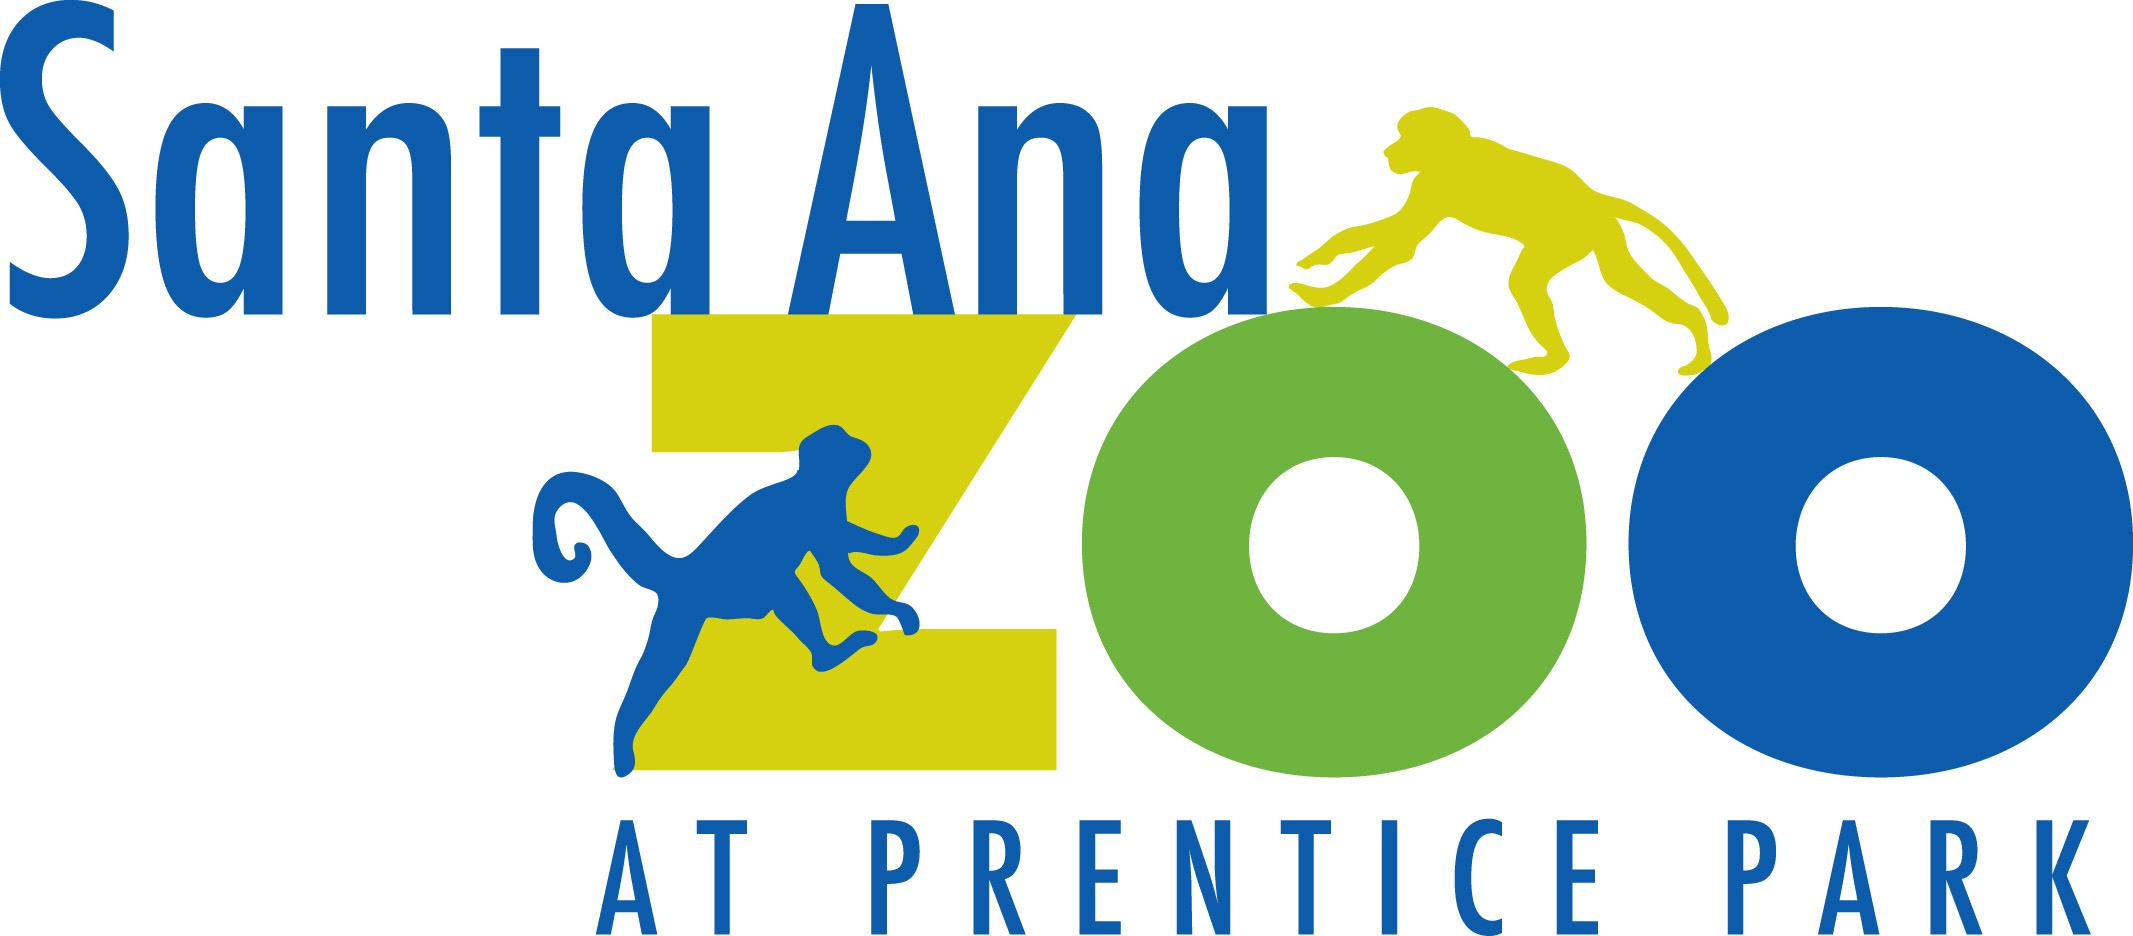 Santa Ana Zoo at Prentice Park | Climate Interpreter